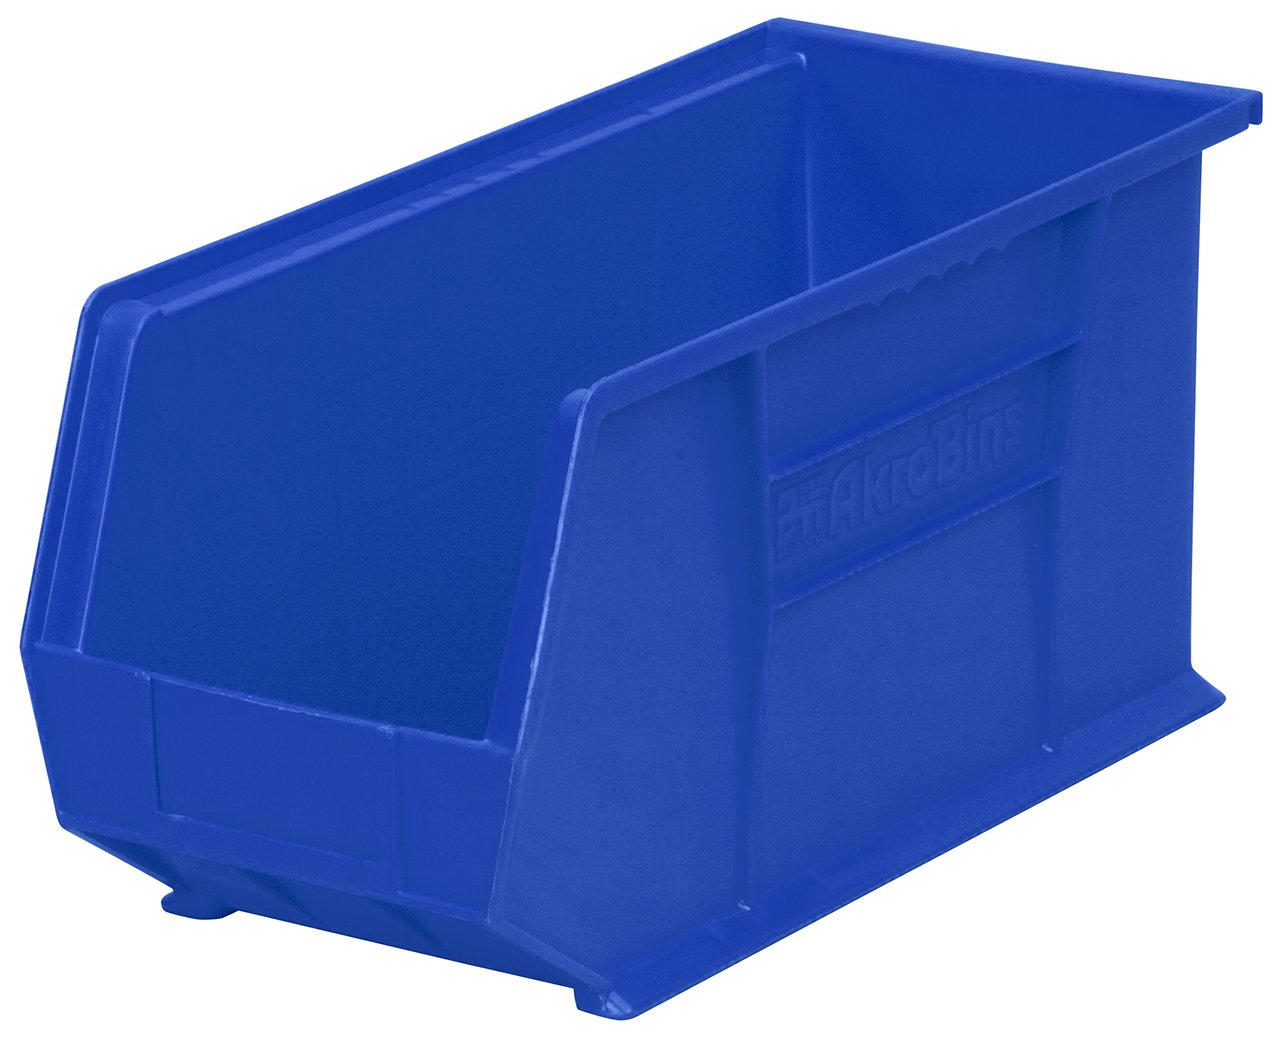 Akro-Mils 30265 Plastic Storage Stacking Hanging Akro Bin, 18-Inch by 8-Inch by 9-Inch, Blue, Case of 6 by Akro-Mils